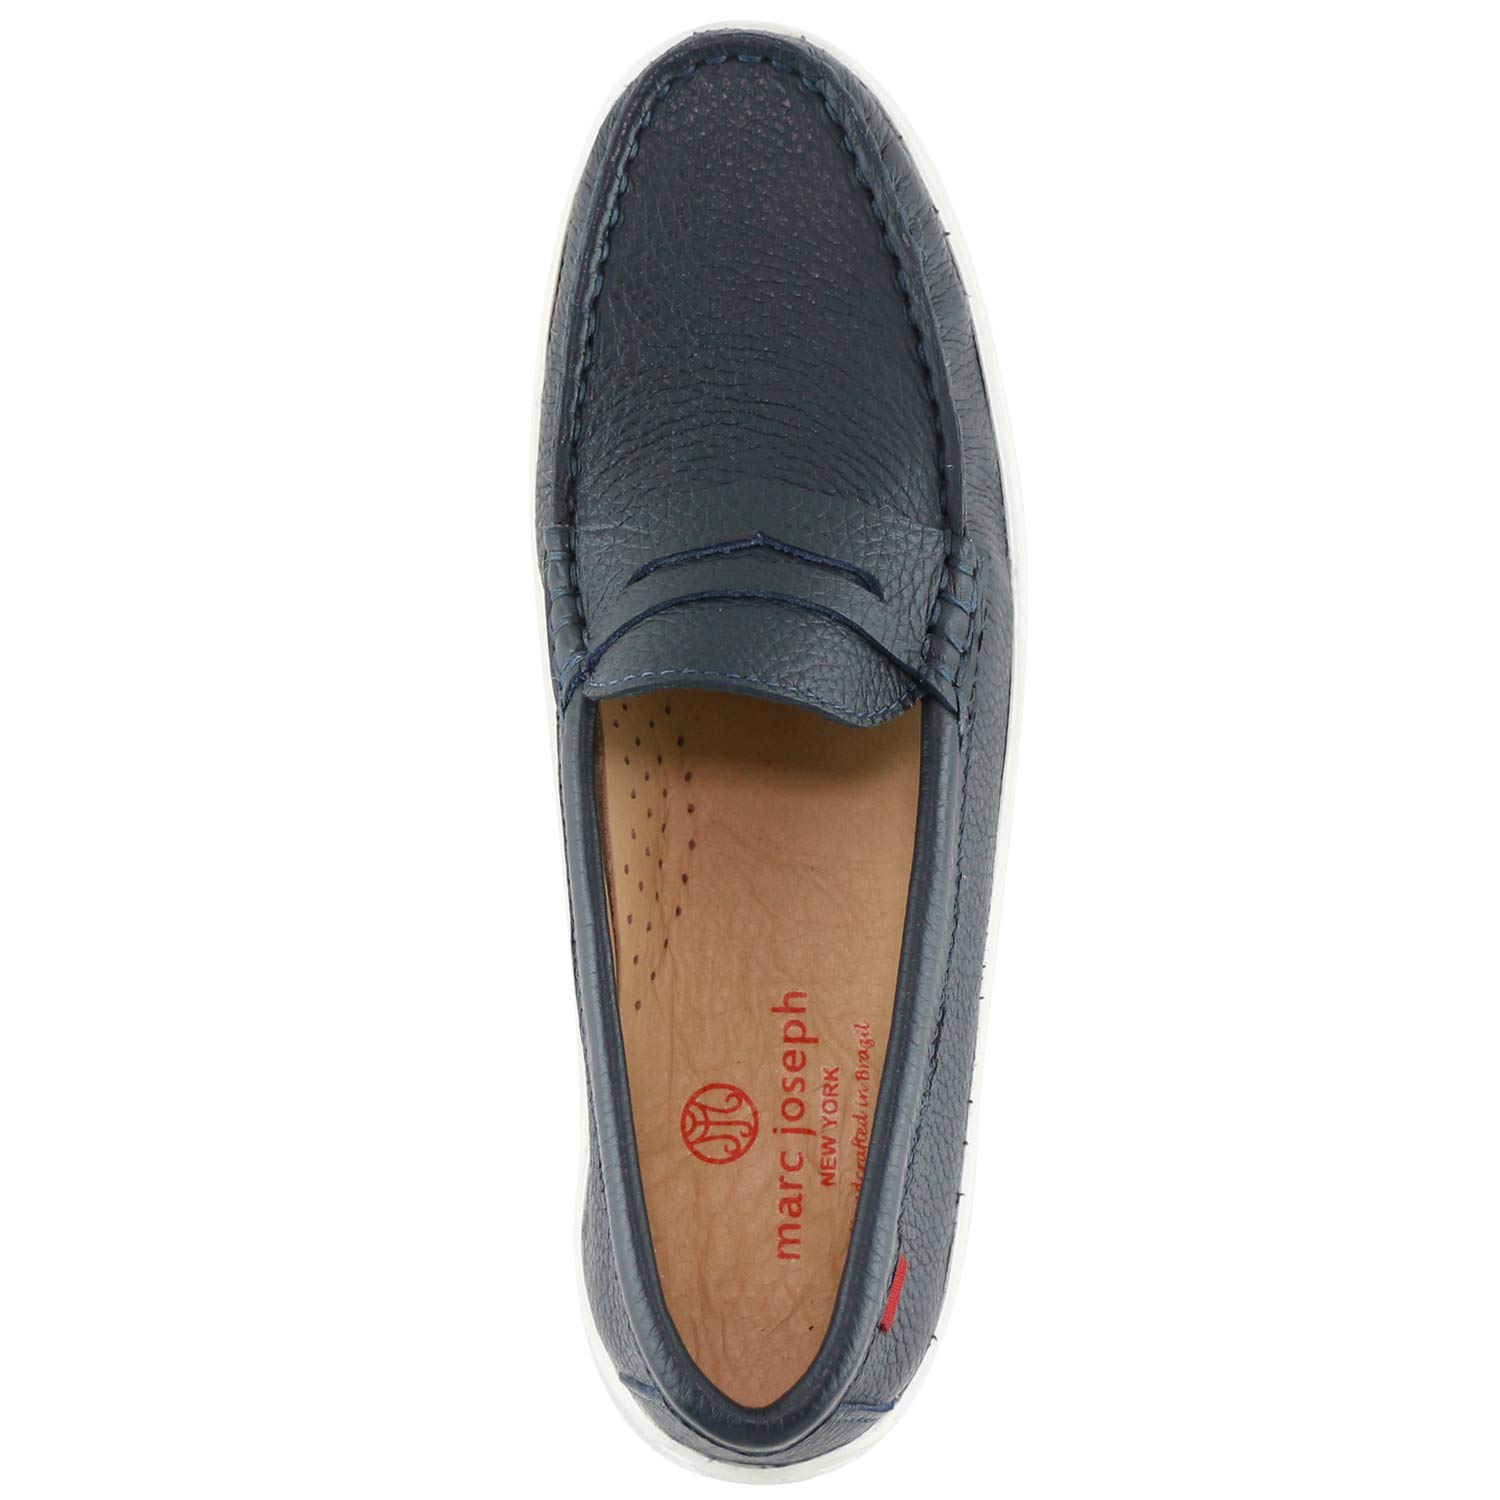 MARC JOSEPH NEW YORK Kids Boys/Girls Casual Comfort Slip On Penny Loafer Navy Grainy 5.5 by MARC JOSEPH NEW YORK (Image #6)